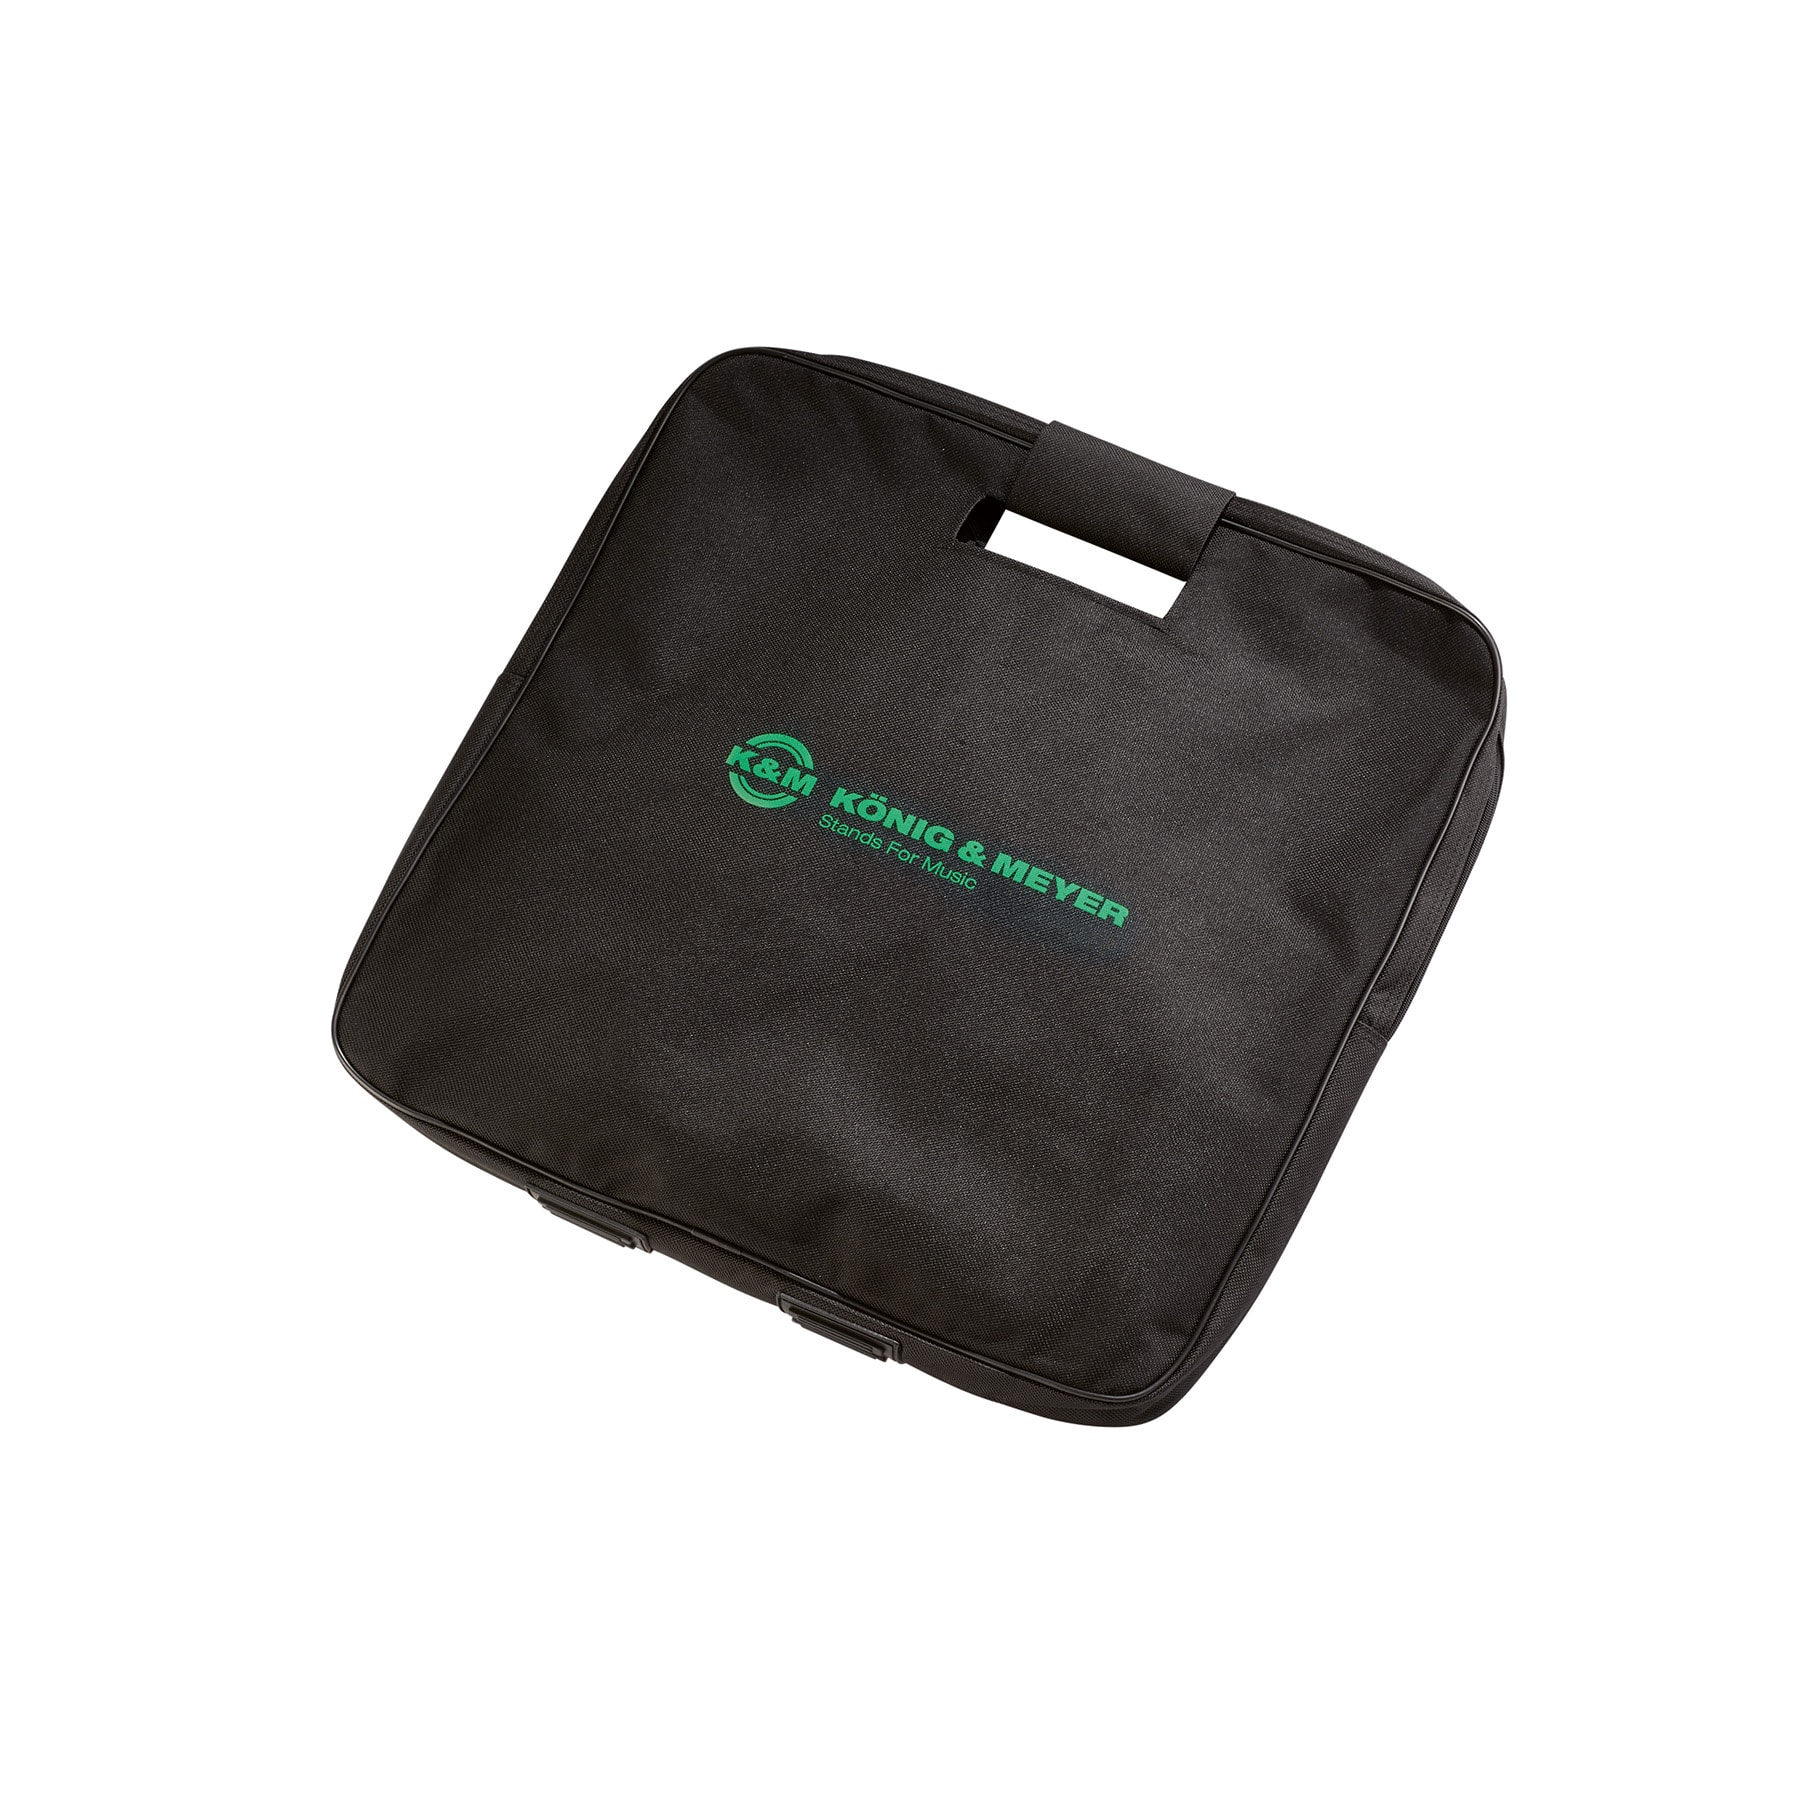 KM24627 - Carrying case for base plate